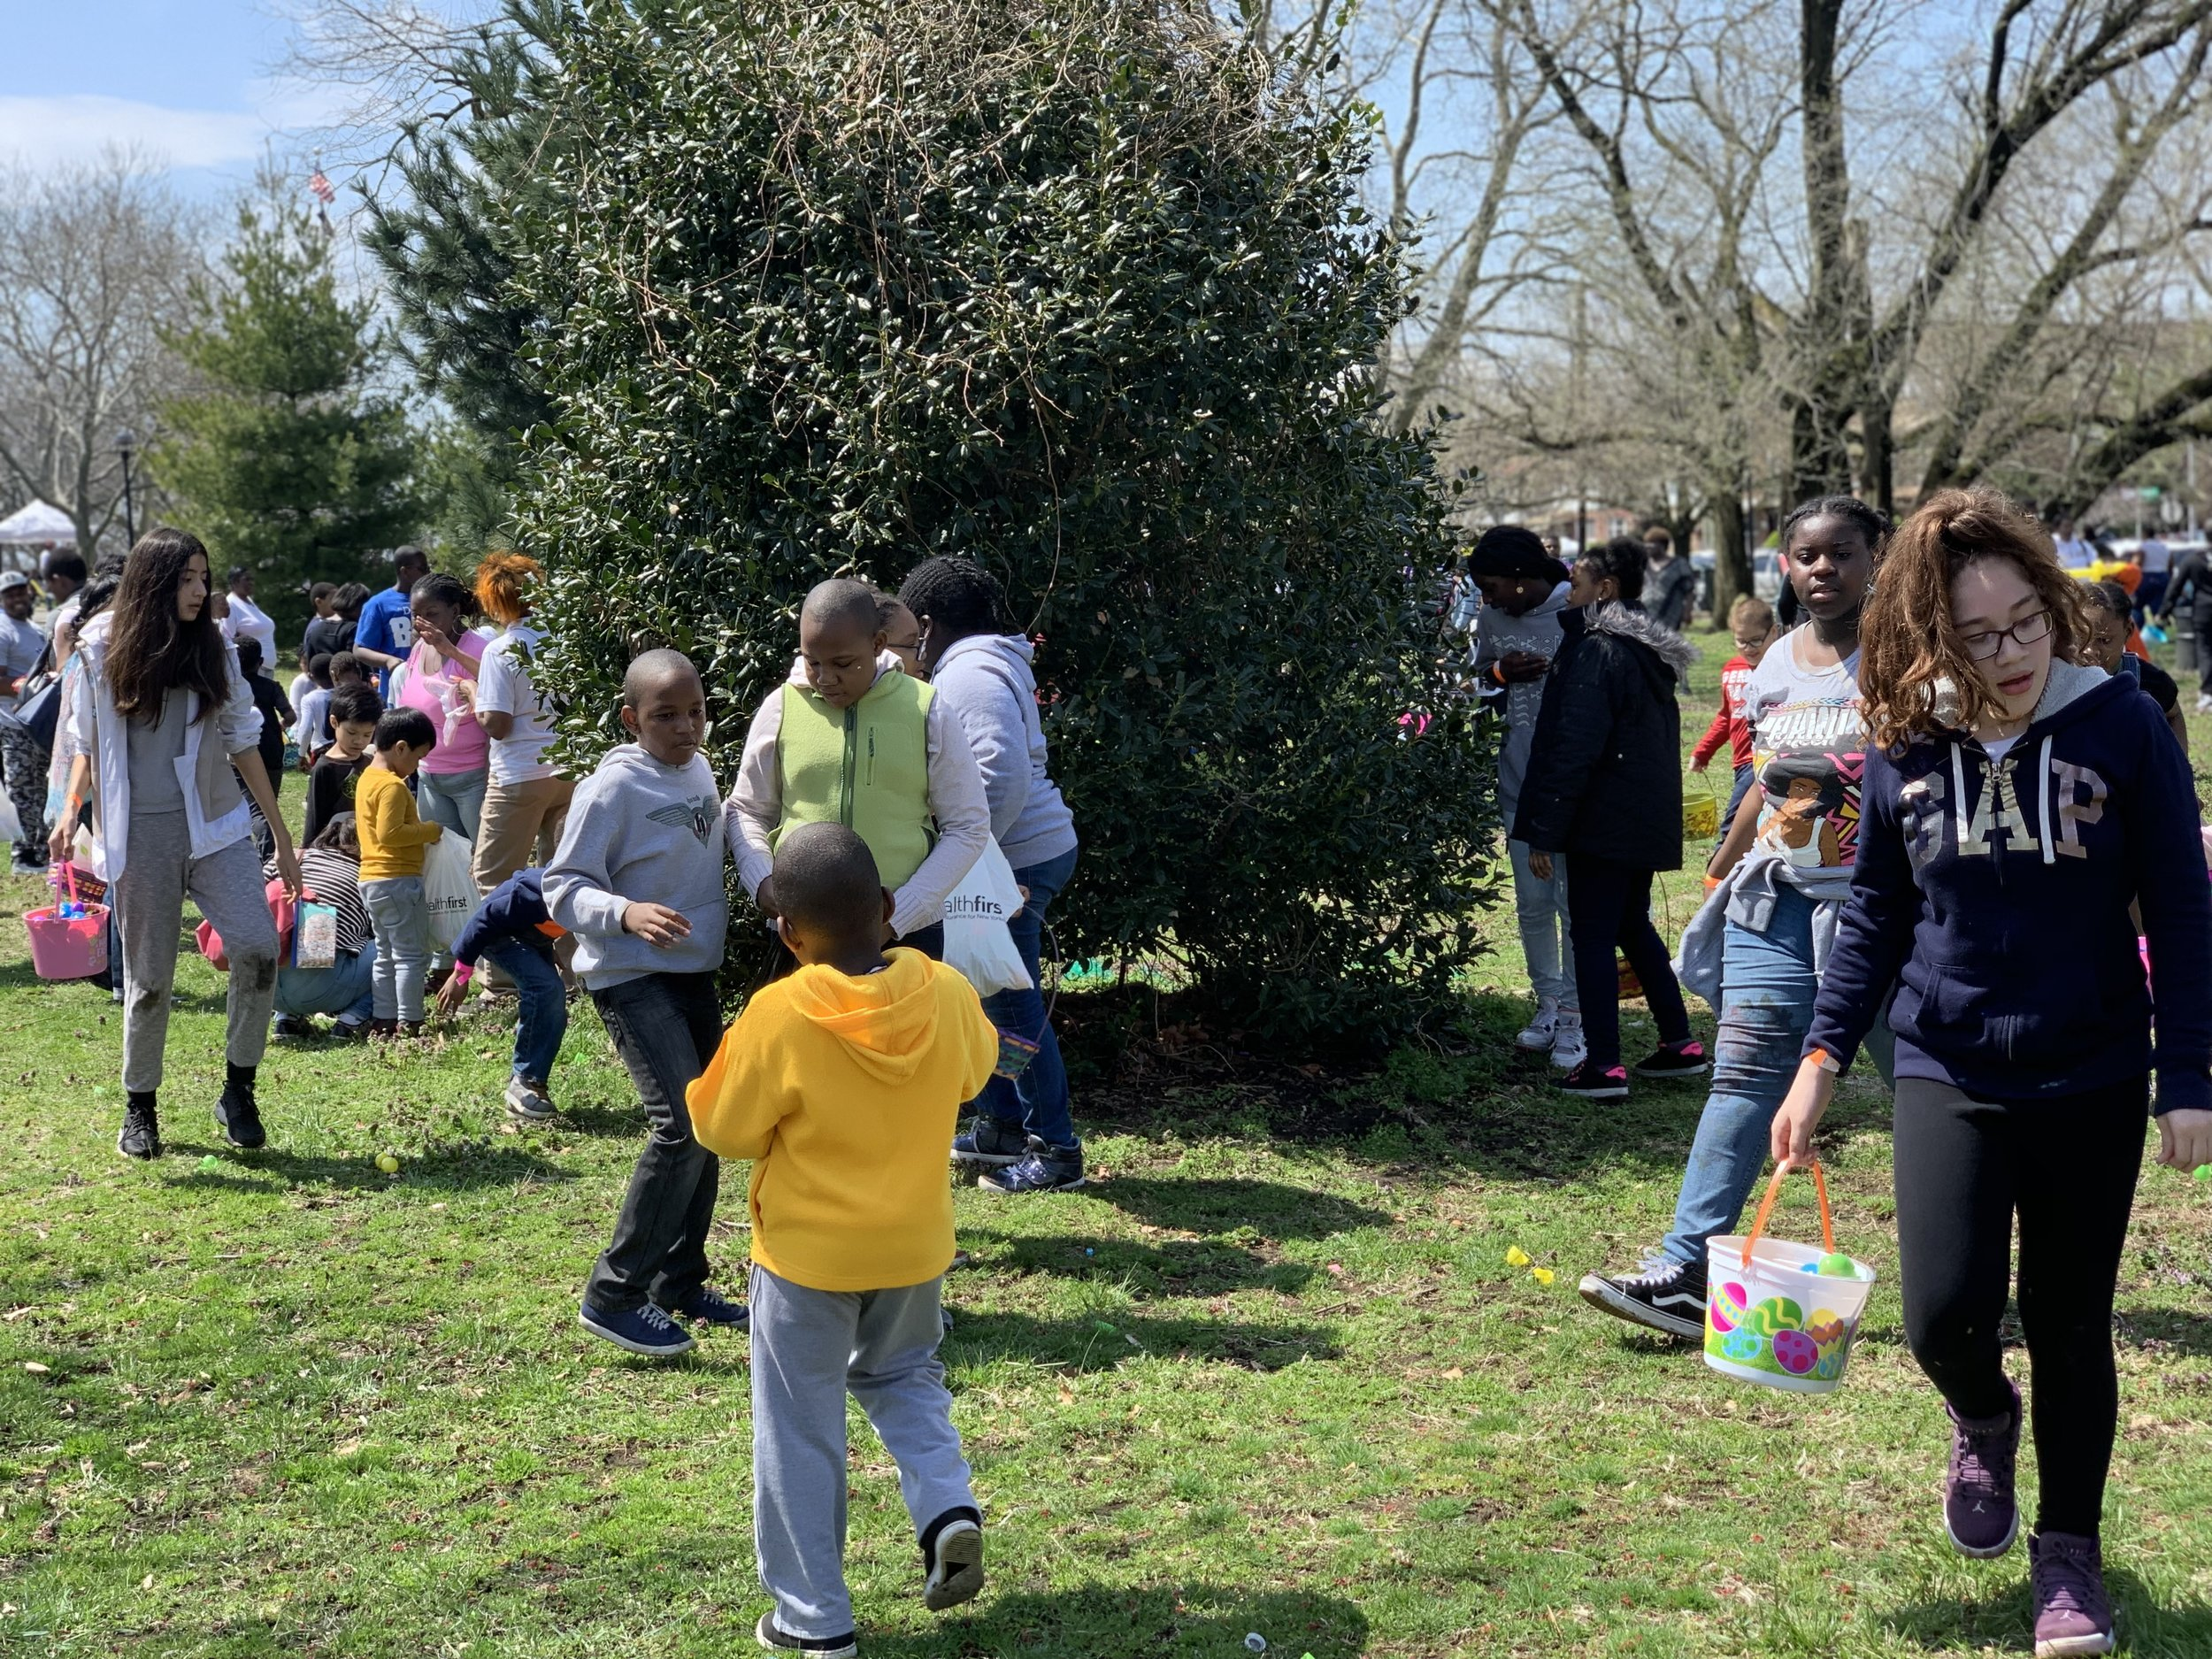 SD-19-Easter-Egg-Hunting-_April-2019.jpg